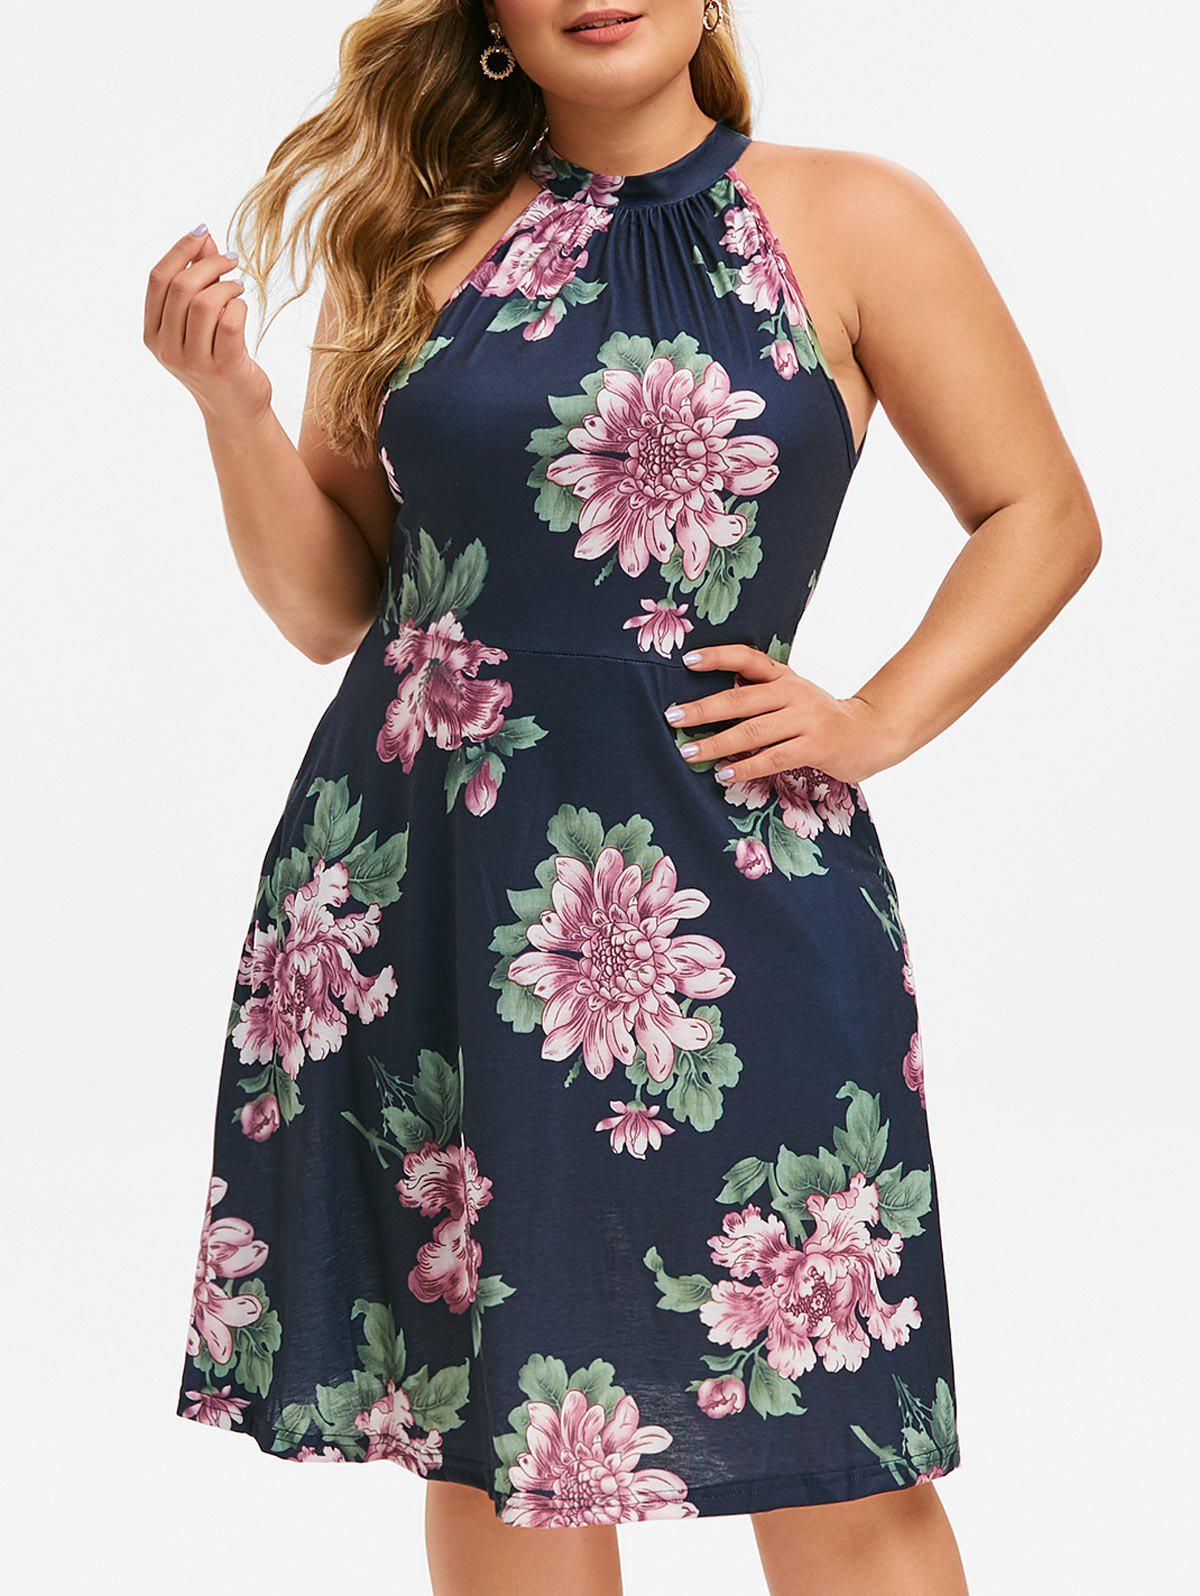 Shop Keyhole Seam Pockets Floral Plus Size Dress